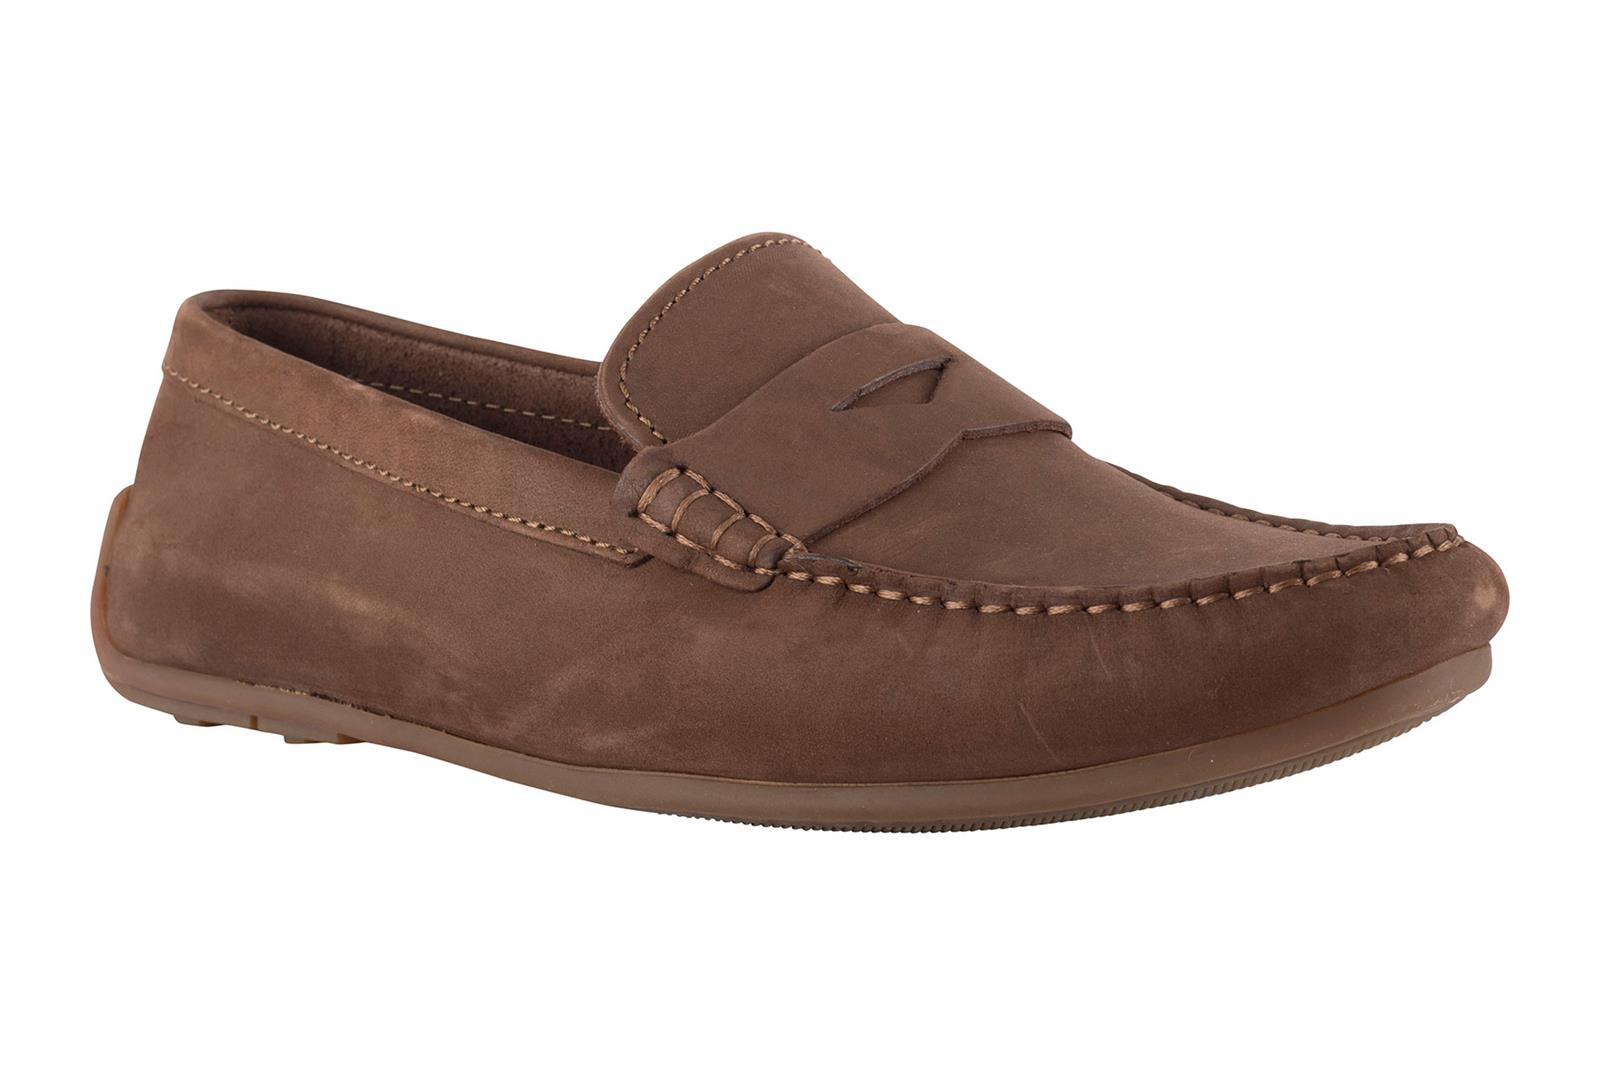 32f92fc5bb Clarks uomo mocassino MARRONE